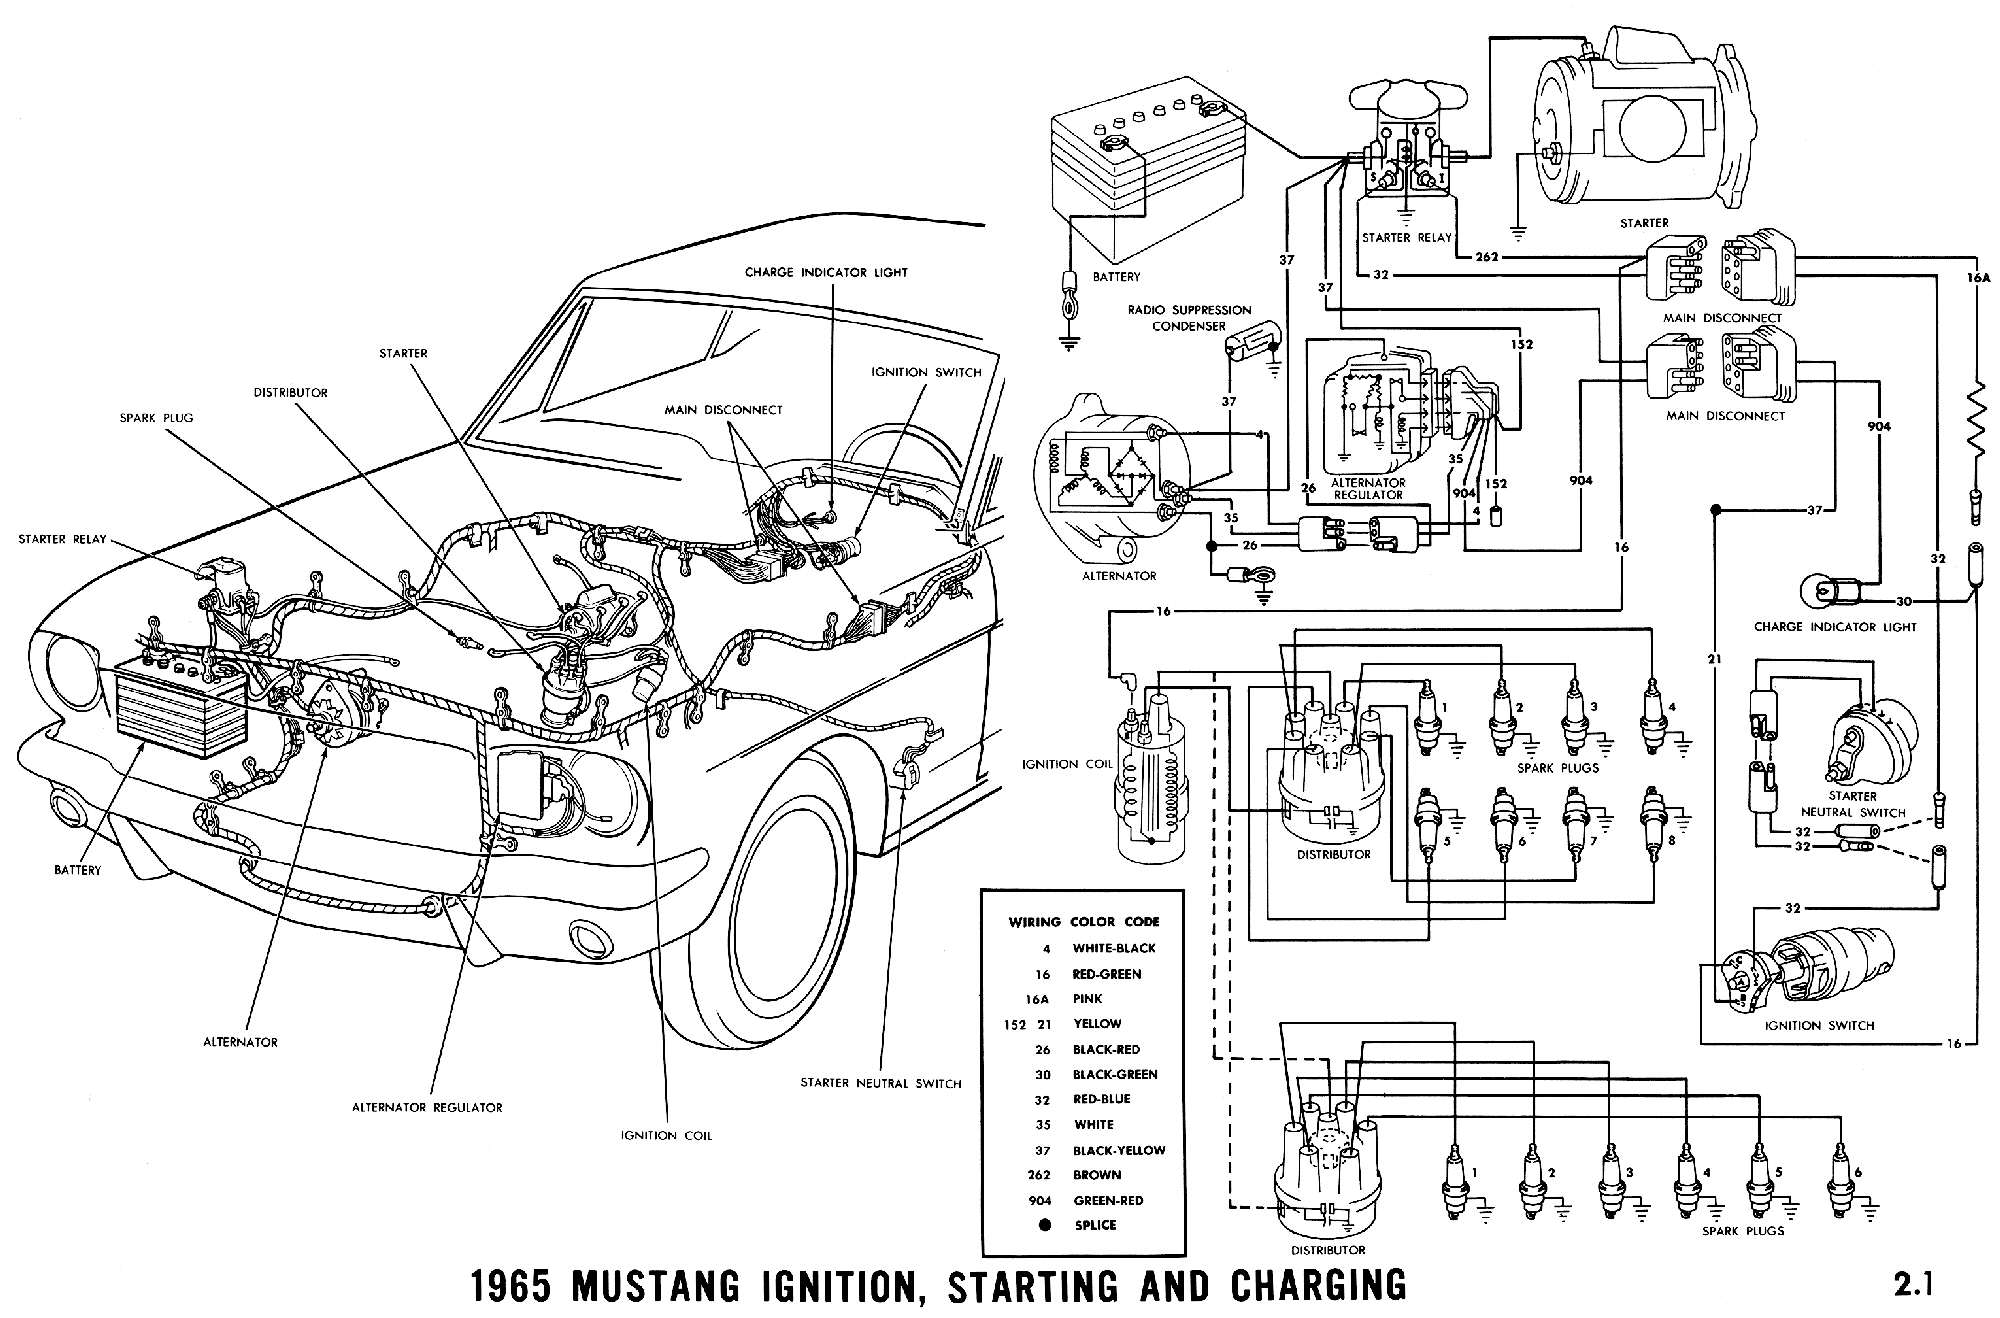 1965c 1965 mustang wiring diagrams average joe restoration engine wiring diagram at webbmarketing.co